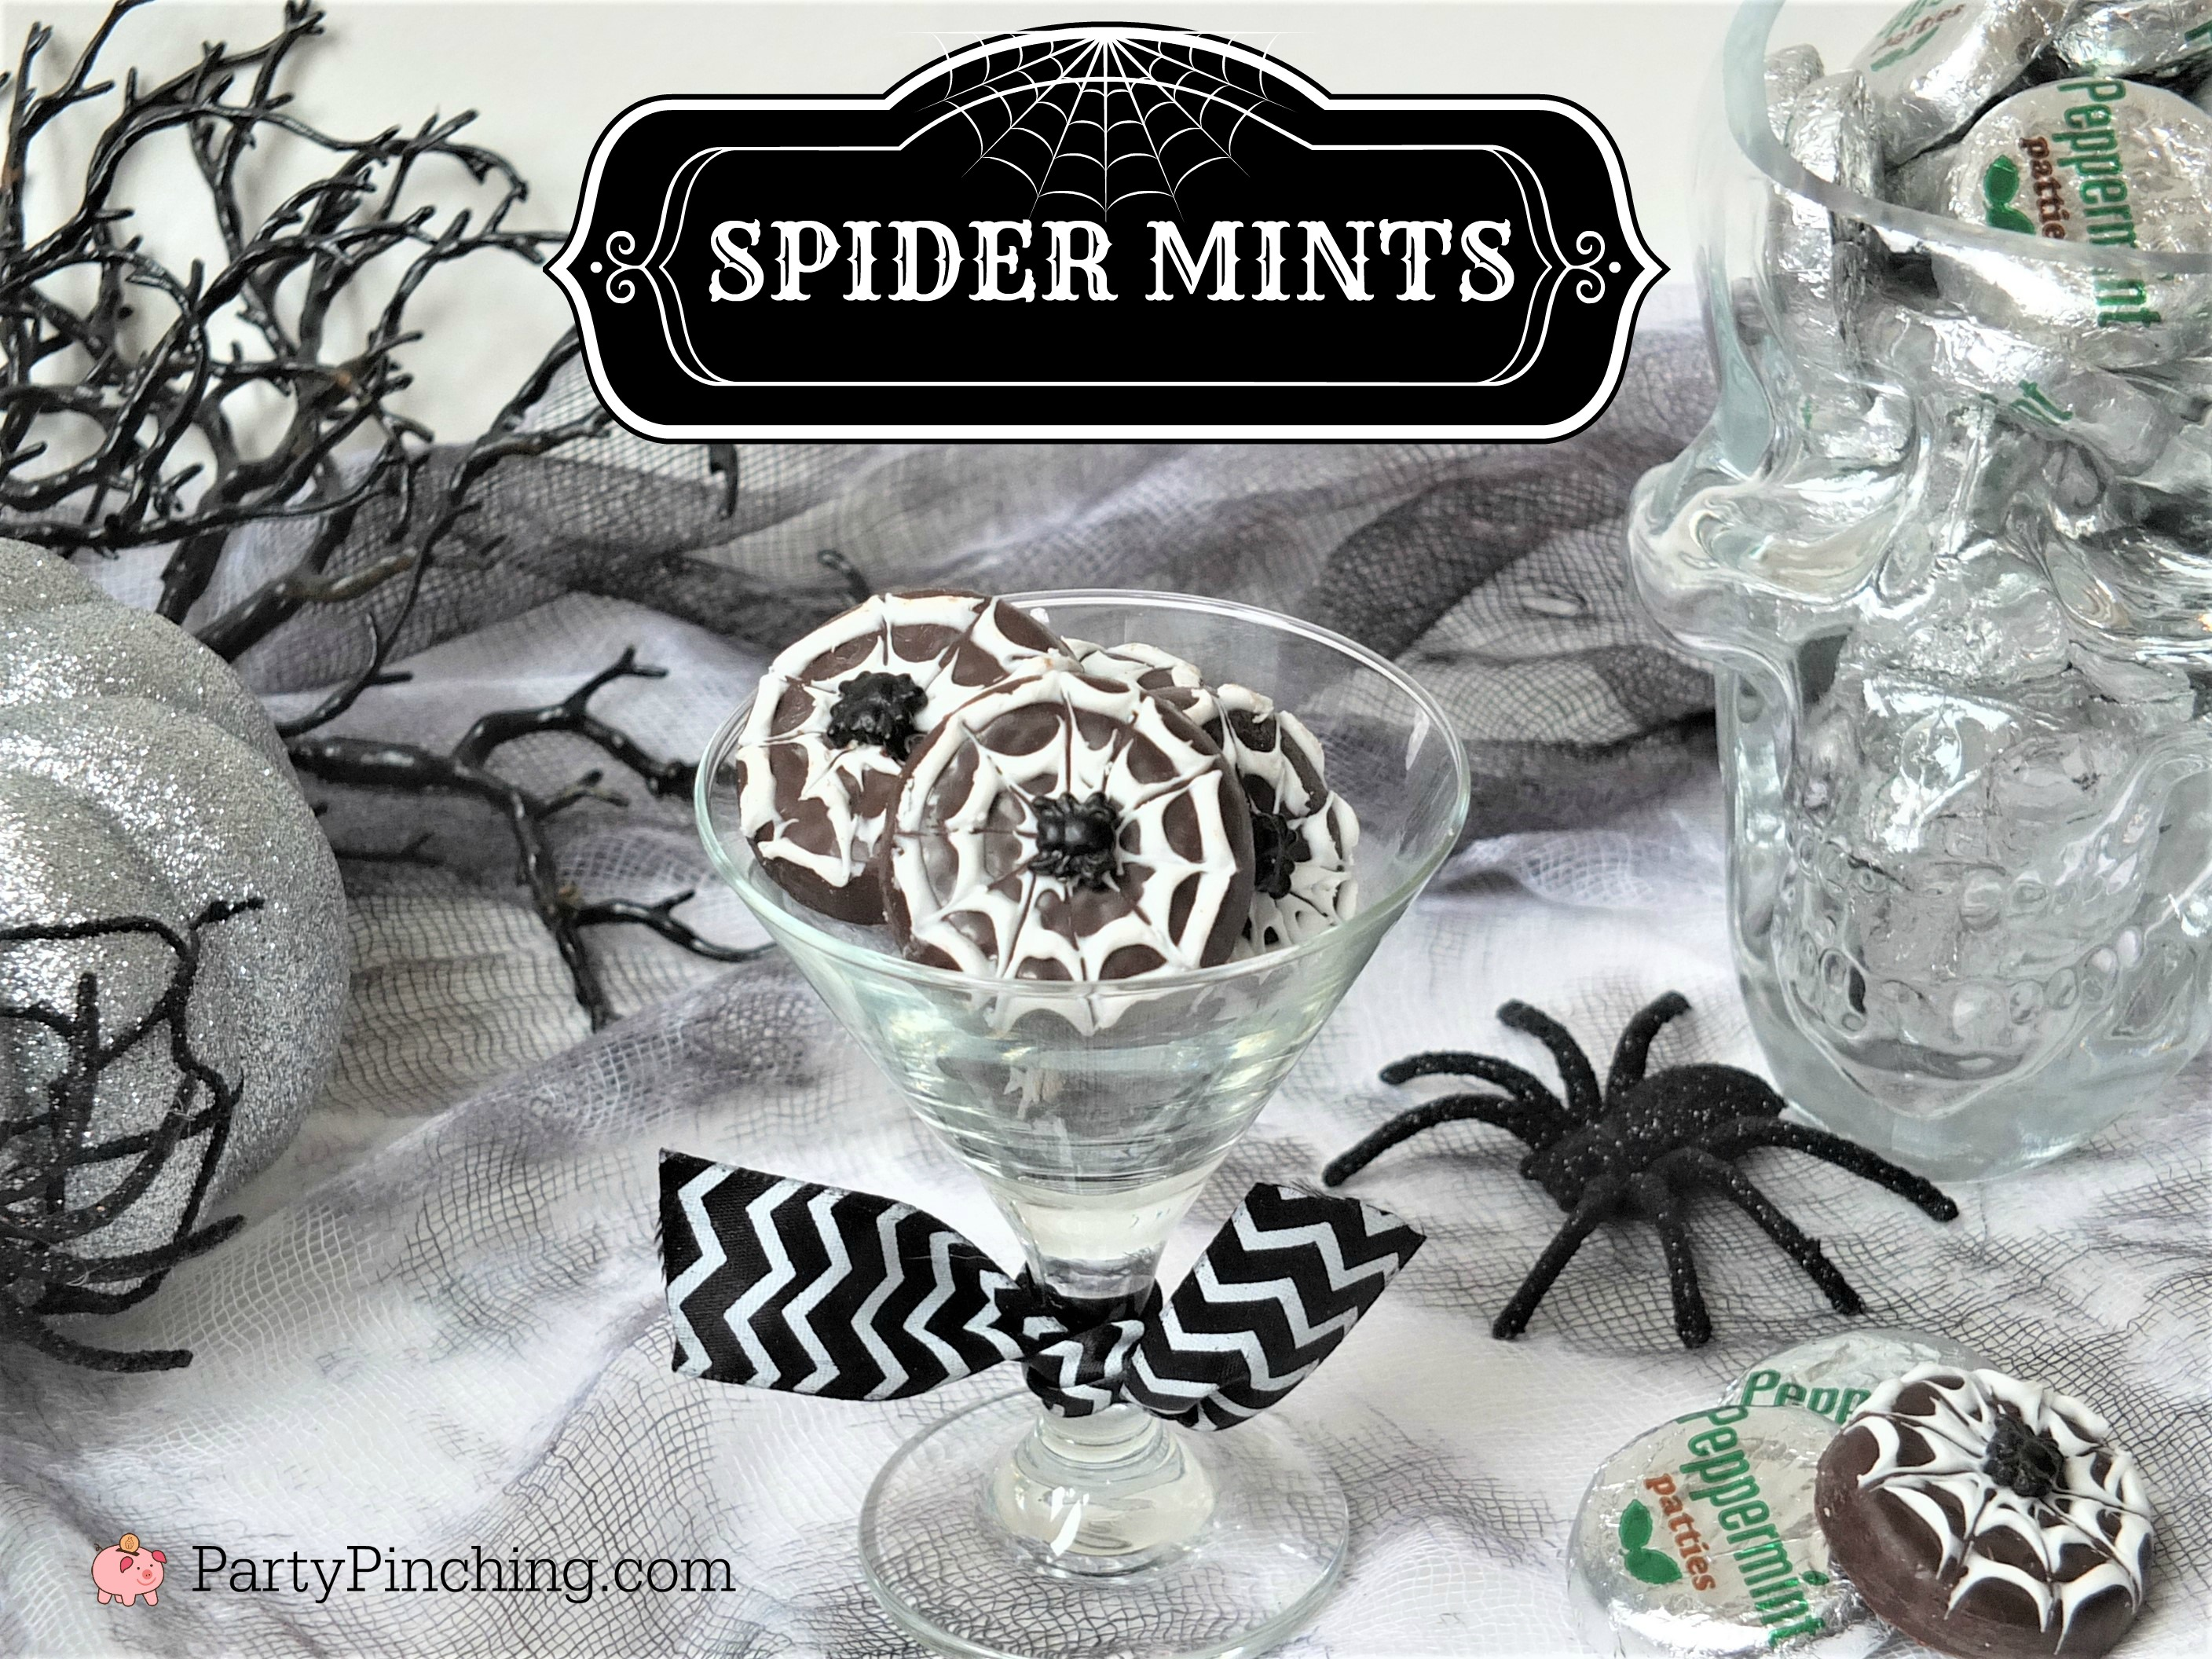 spider mints, mint patties for Halloween, easy Halloween dessert treat, fun food for kids, Halloween party ideas, cute food, spider web dessert